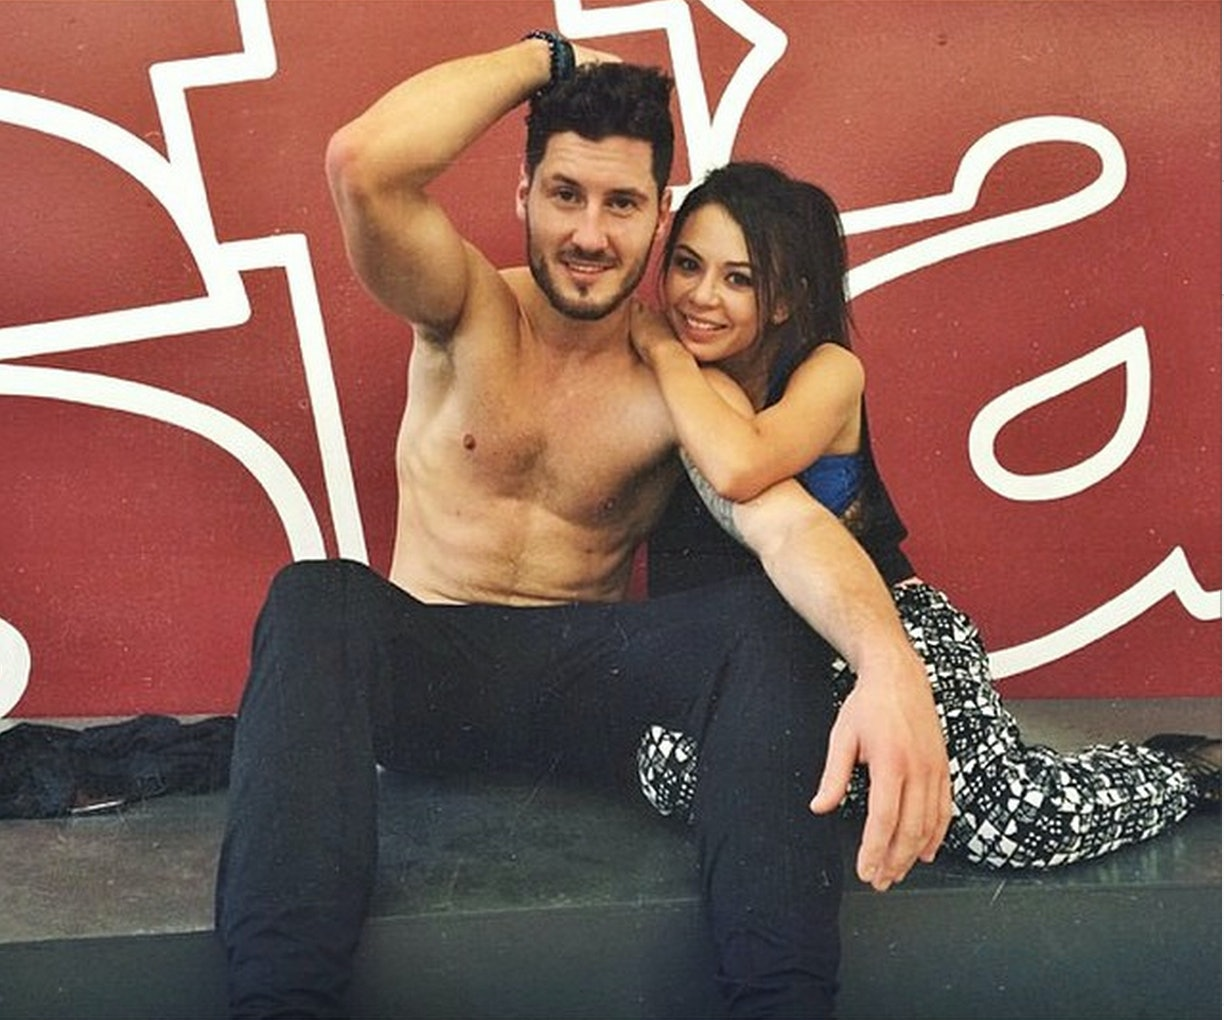 Is val on dwts dating janel